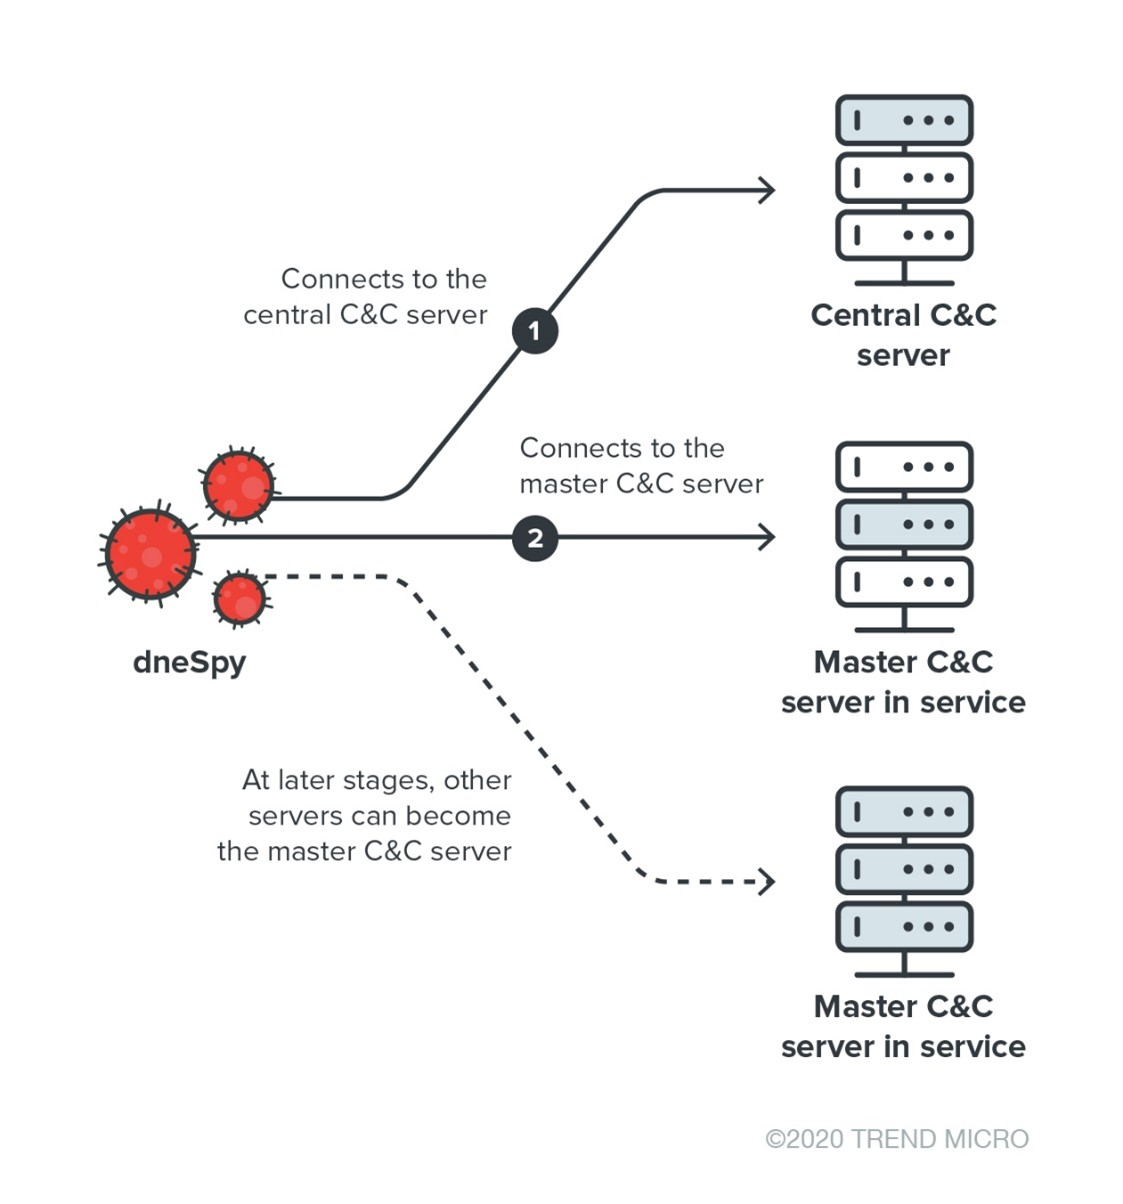 Figure 7. Dynamic C&C server selection